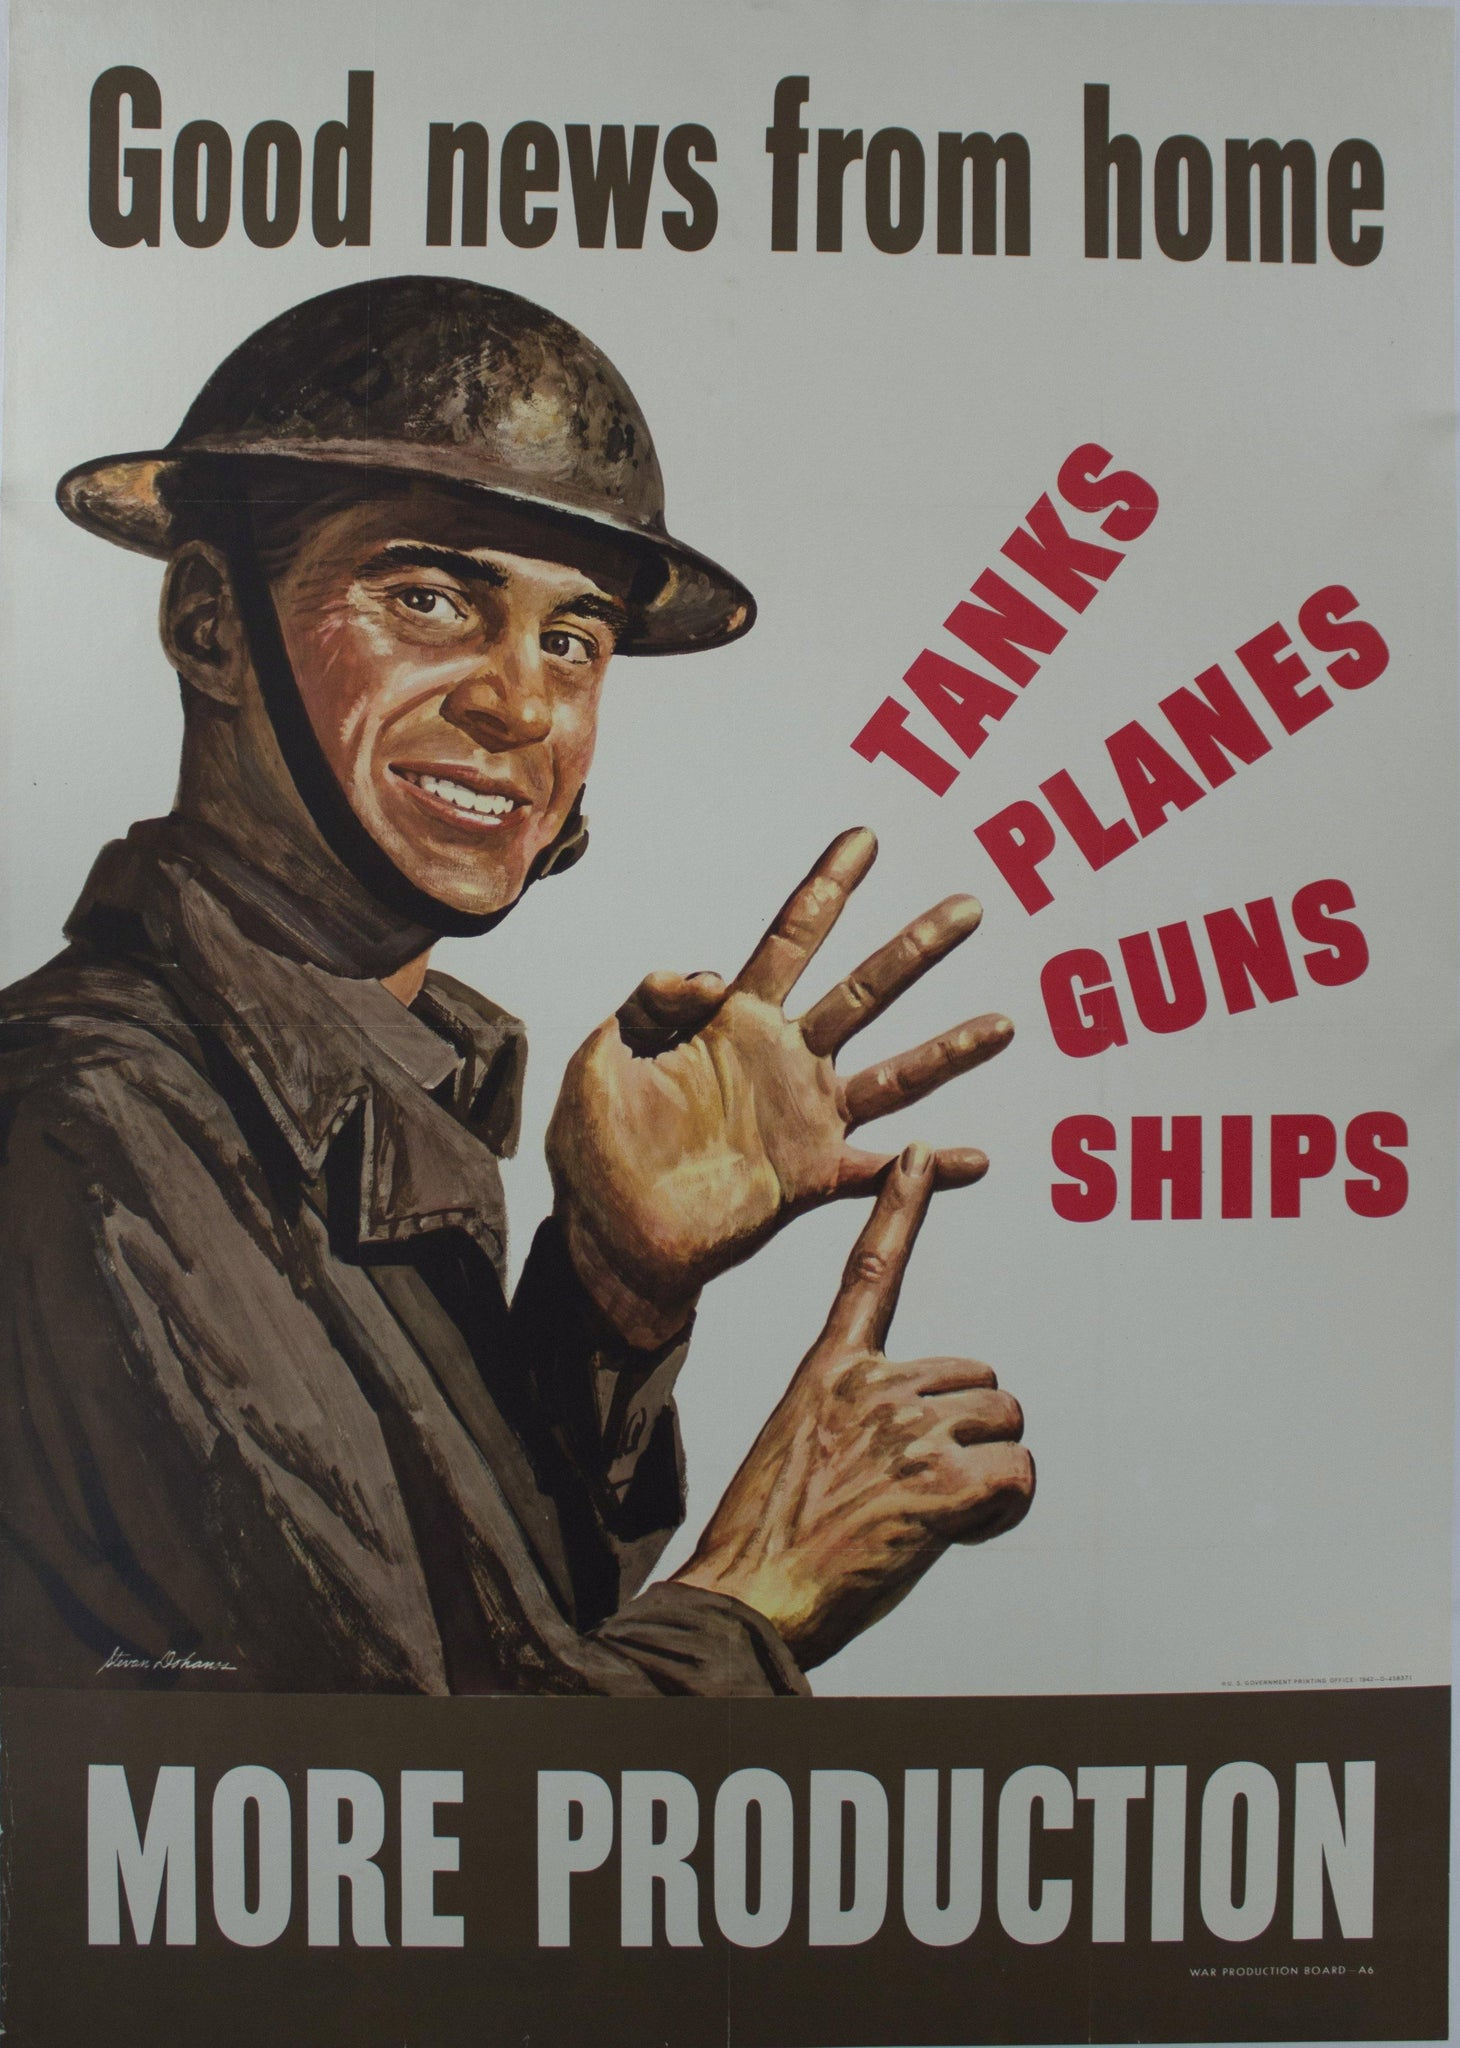 1942 Good News From Home | Tanks Planes Guns Ships | More Production